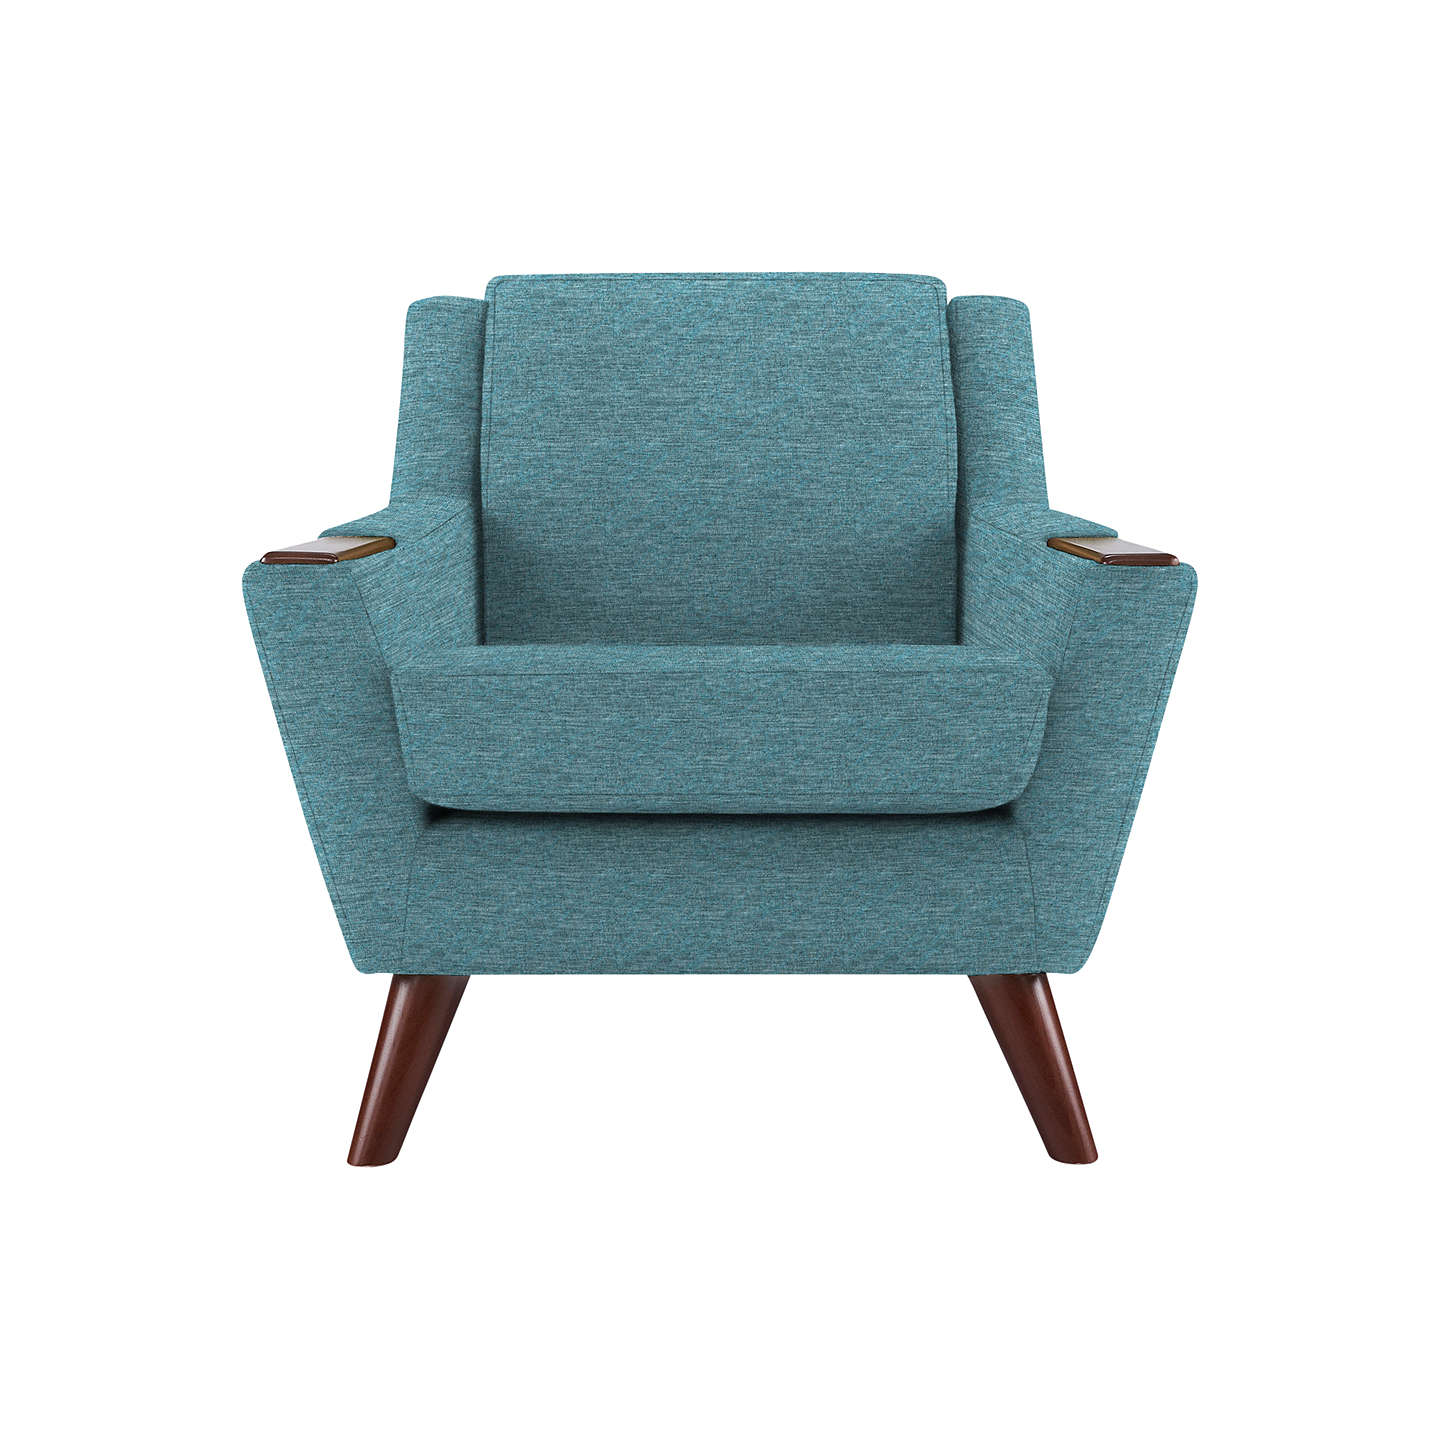 BuyG Plan Vintage The Fifty Five Armchair, Fleck Blue Online at johnlewis.com